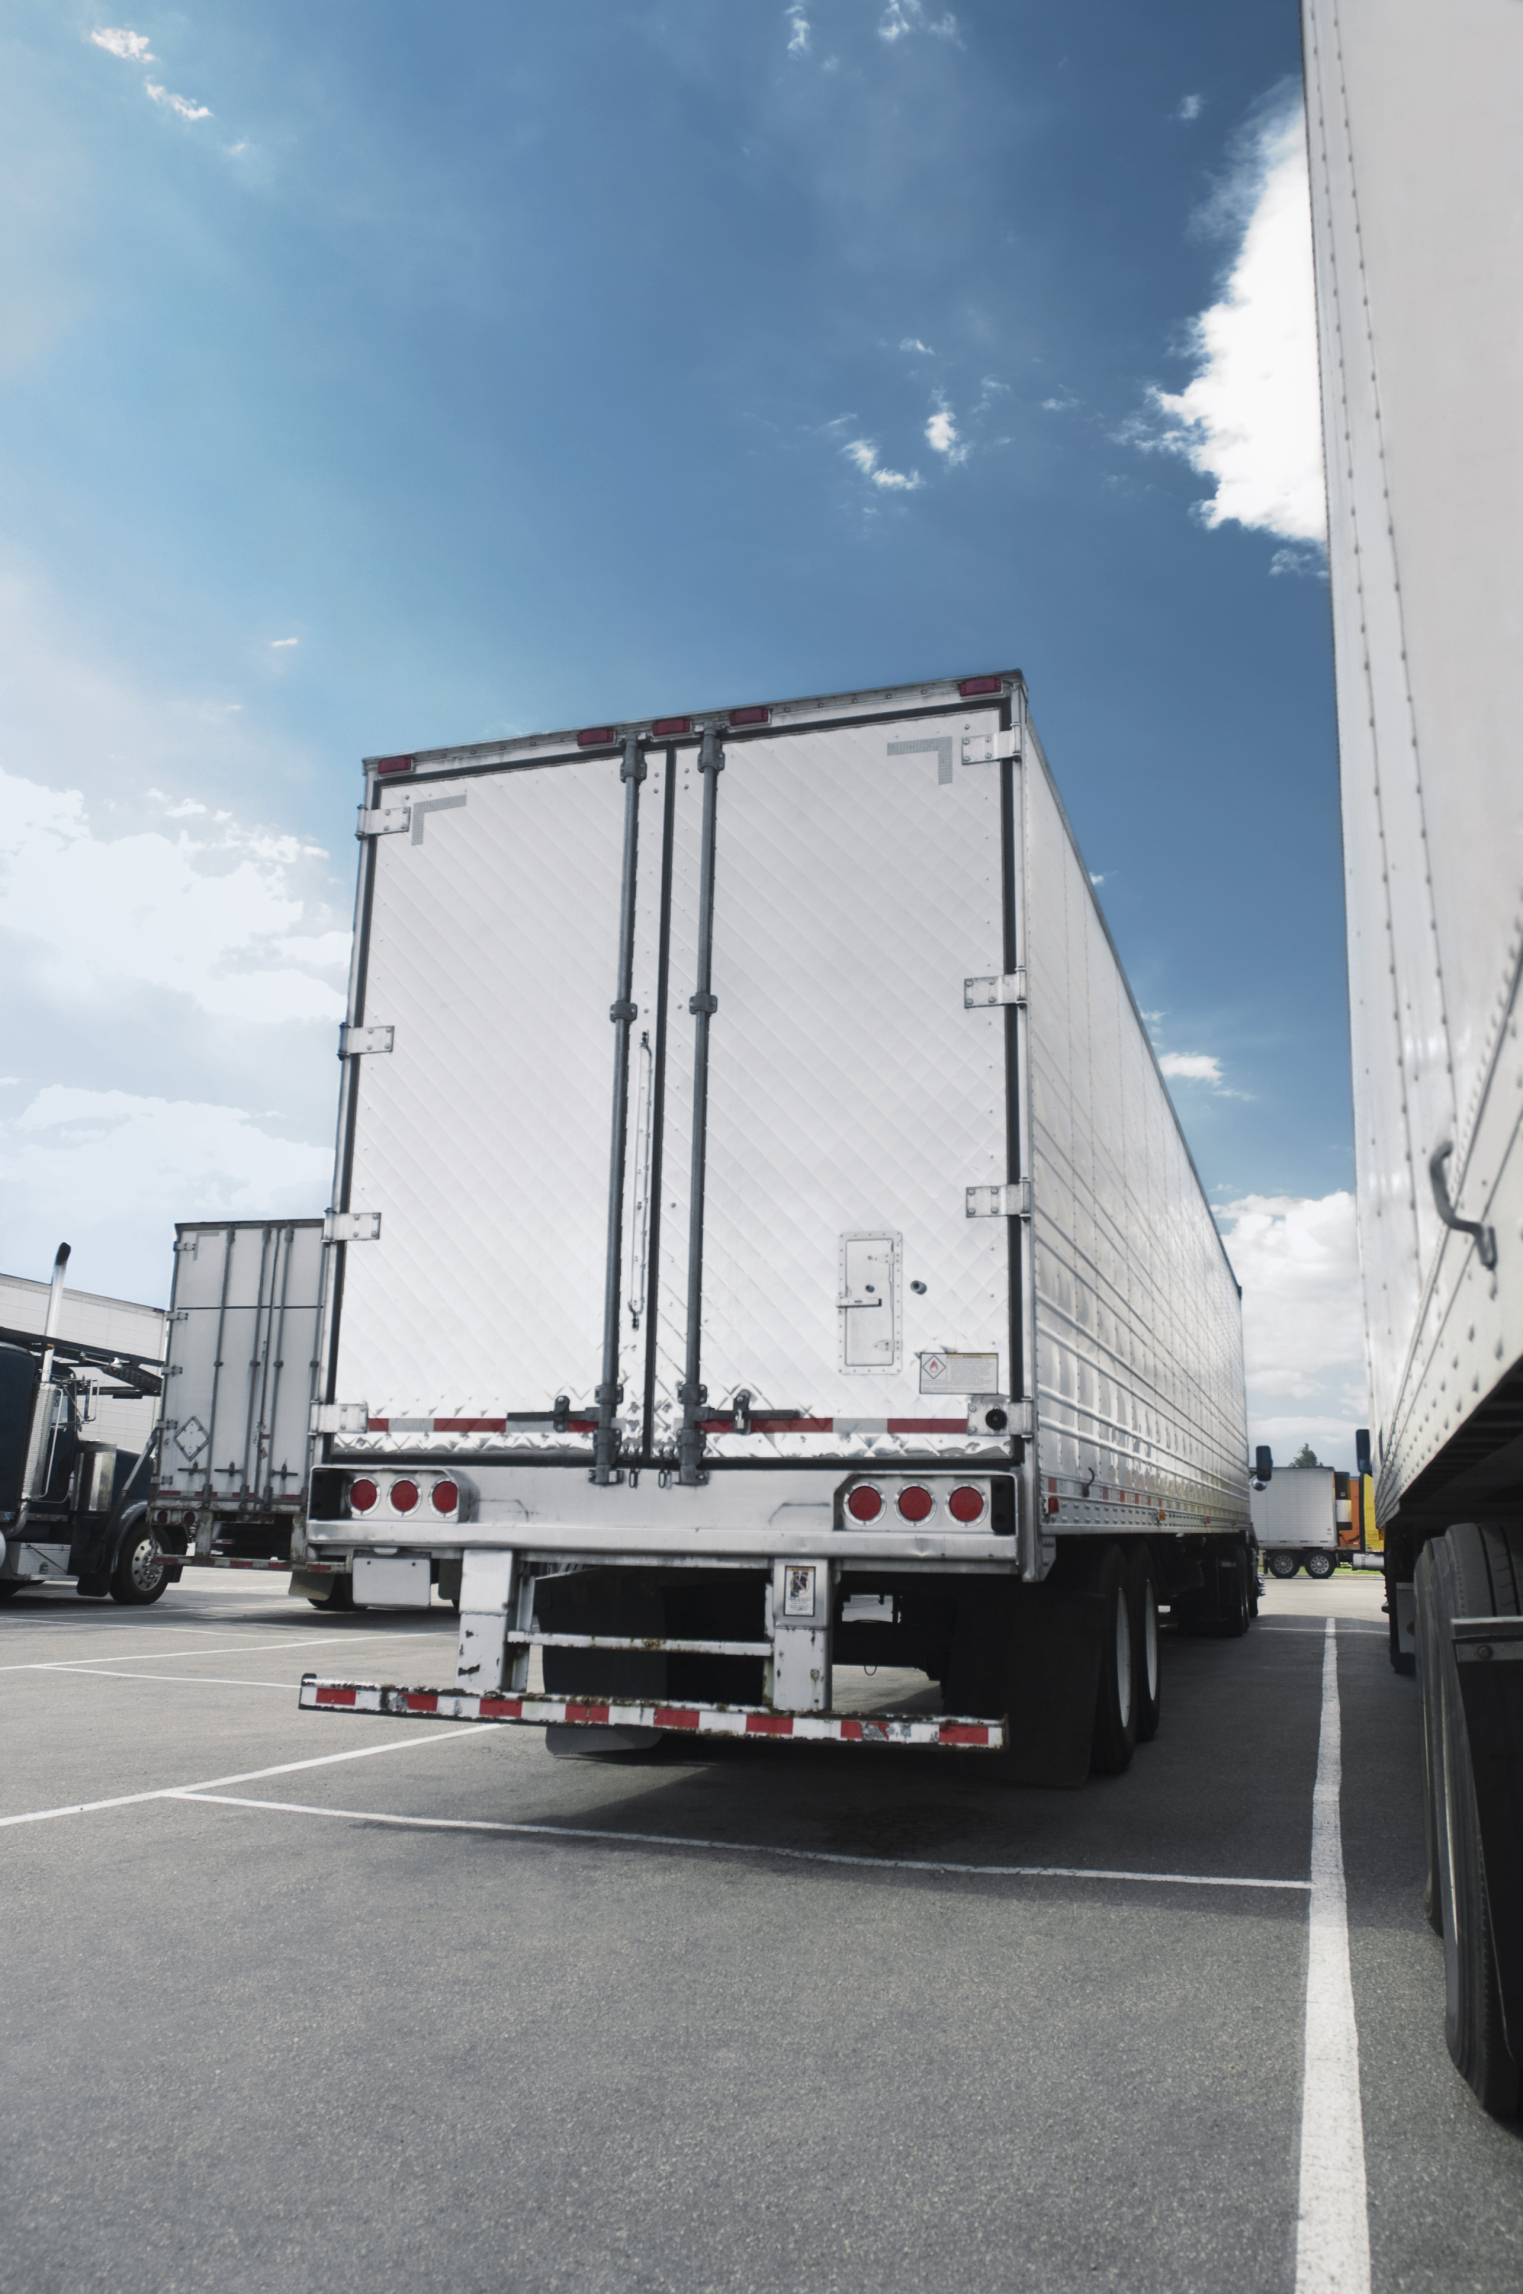 Big Rig Coming For You : Reasons you should watch out for big rigs on california